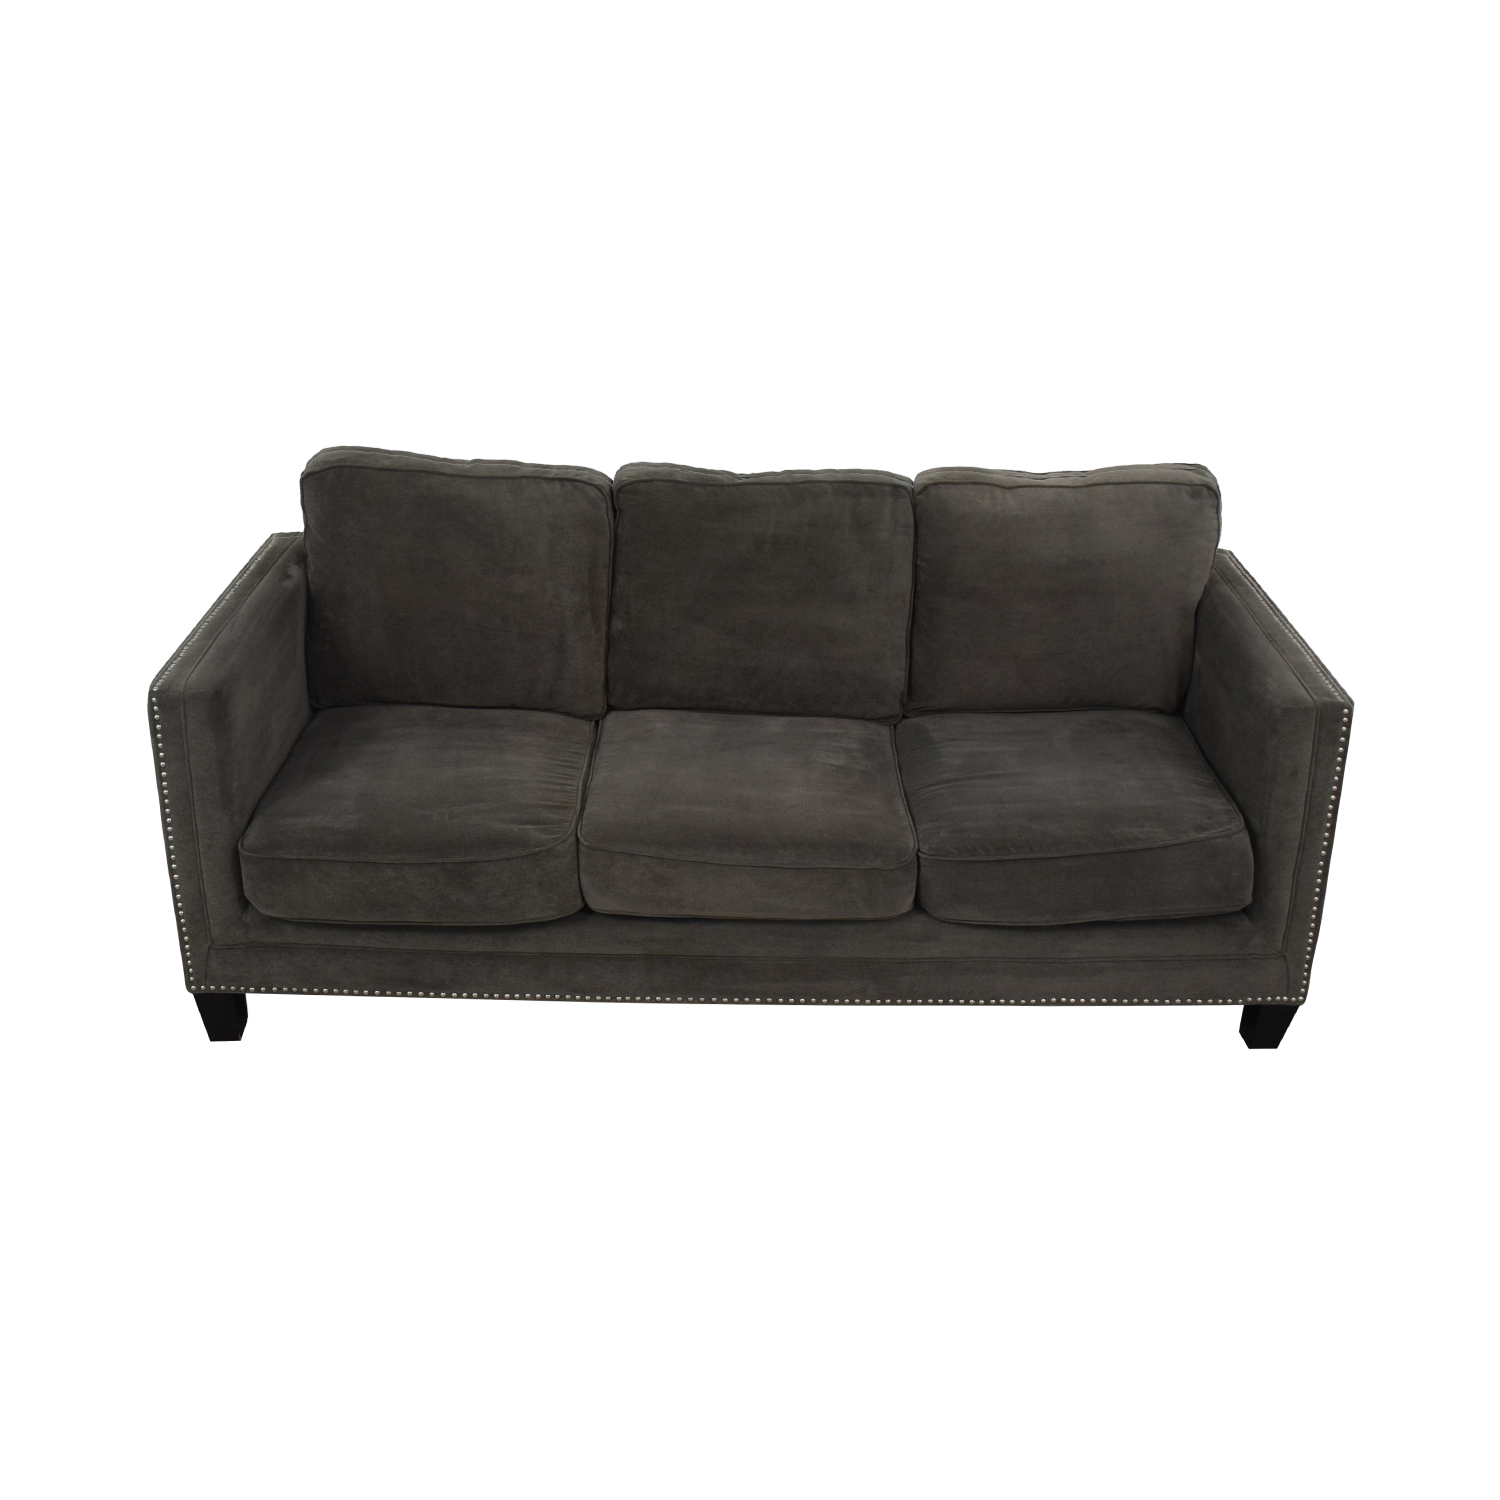 shop Emerald Home Carlton Sofa Emerald Home Furnishings Sofas